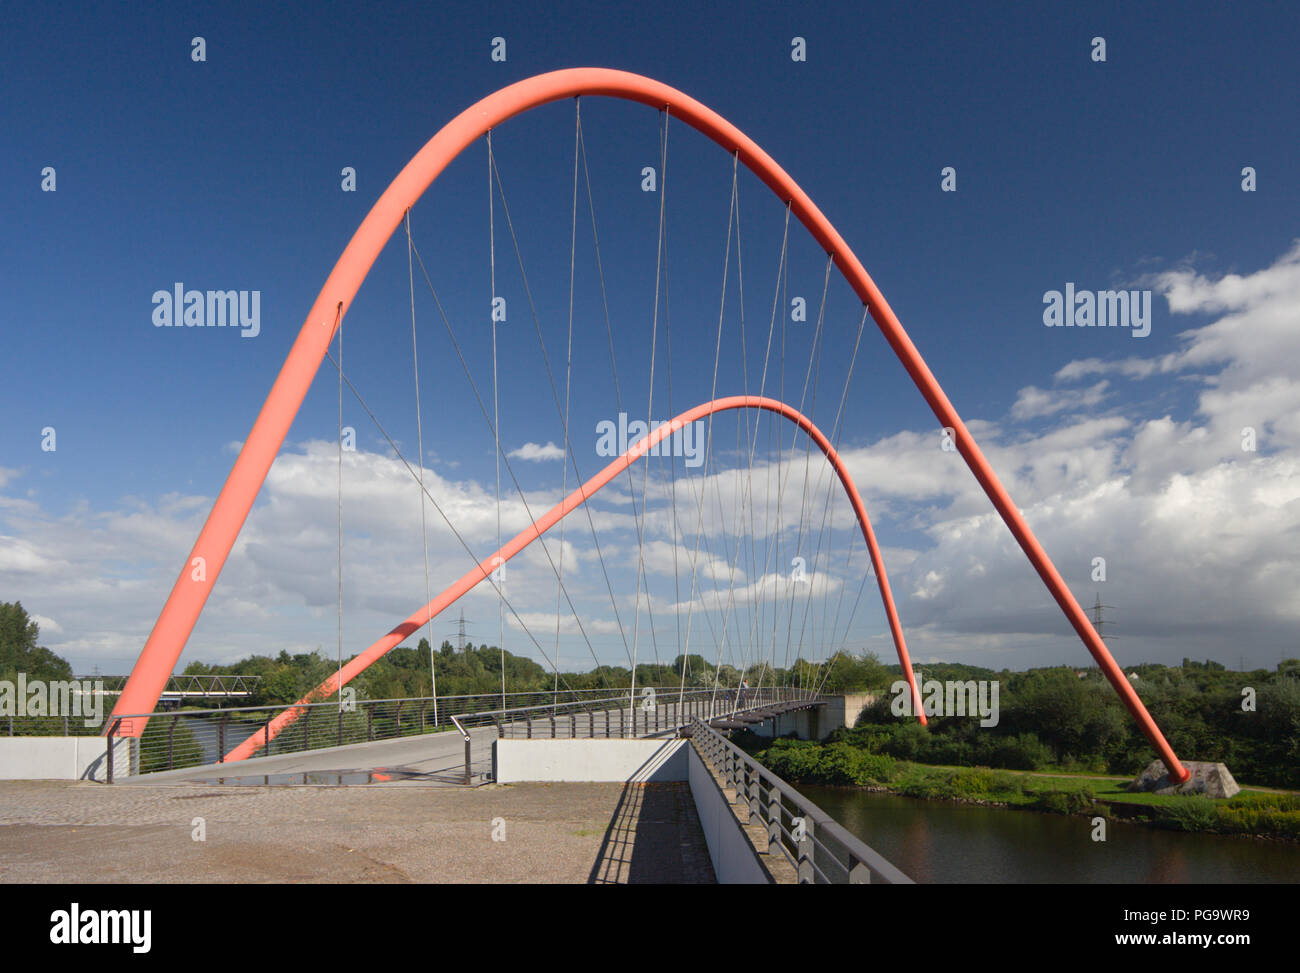 A modern suspension bridge for pedestrians over a canal in Gelsenkirchen, Germany. - Stock Image